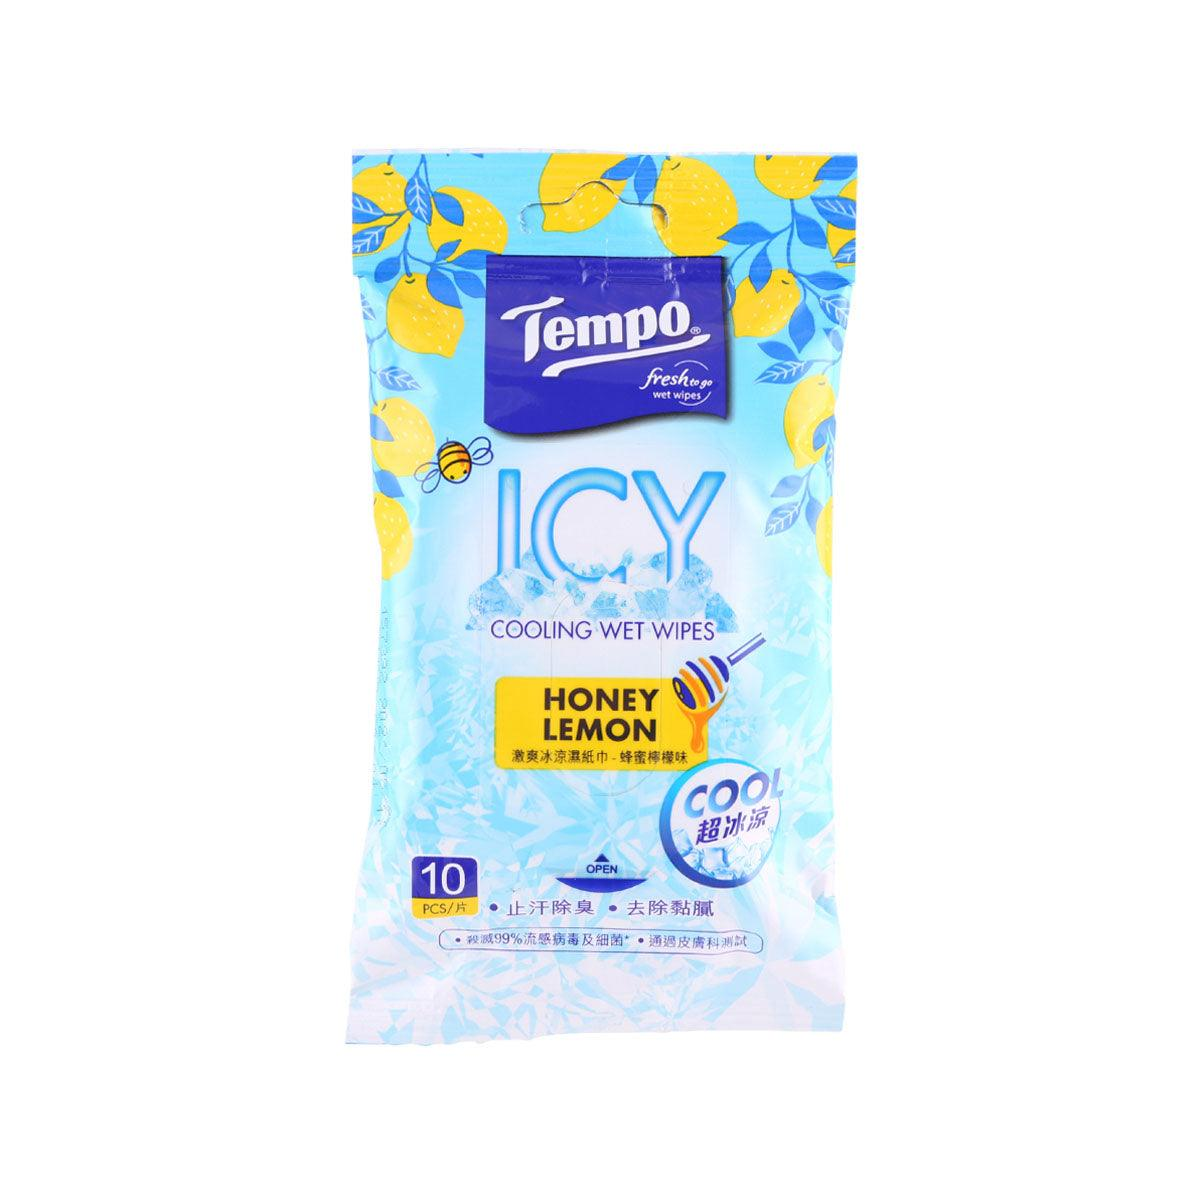 TEMPO Cooling Wet Wipes